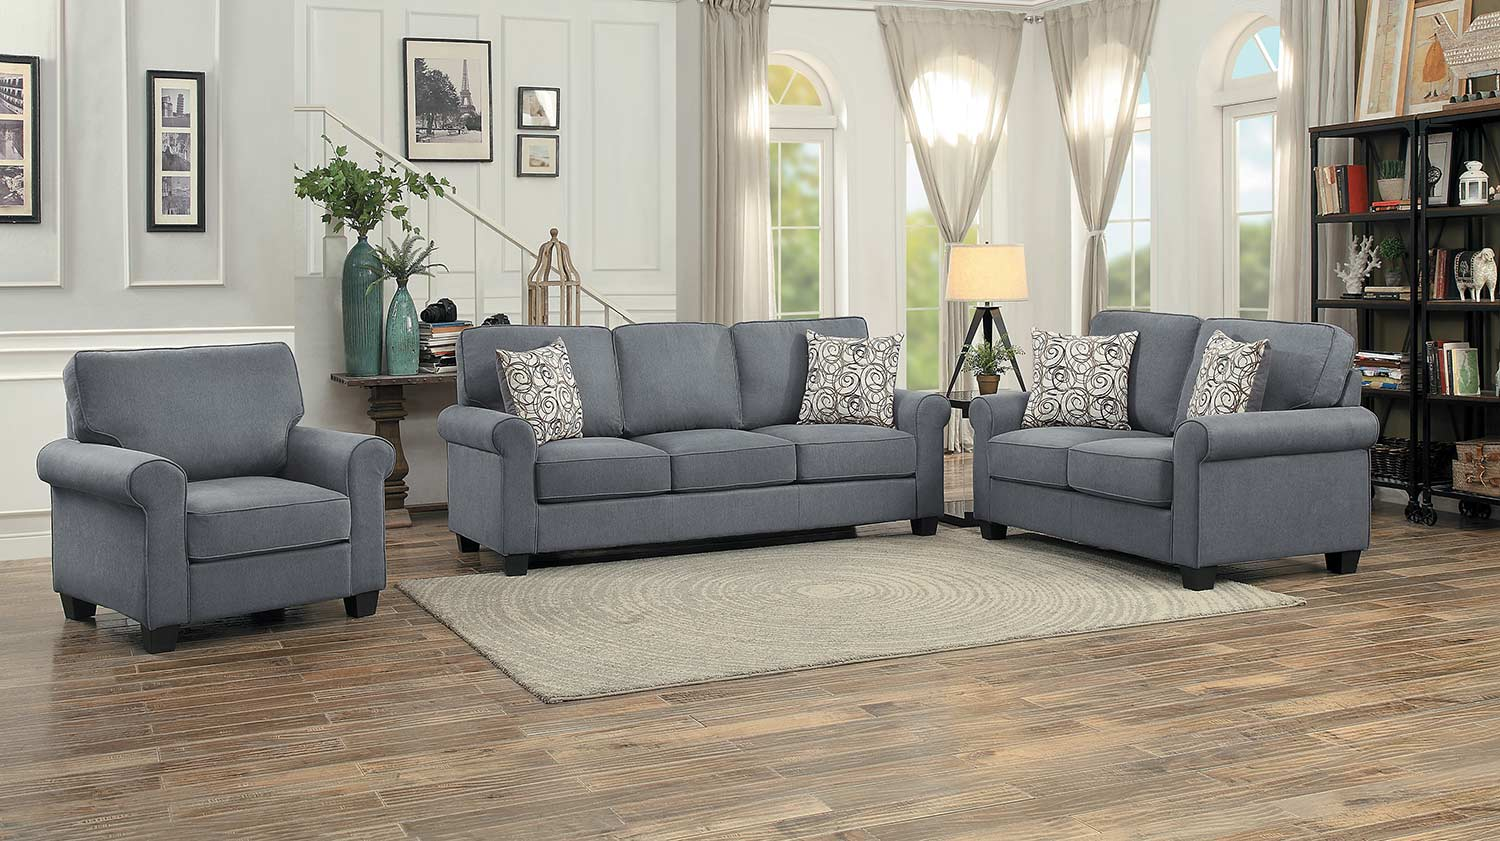 Homelegance Selkirk Sofa Set - Gray